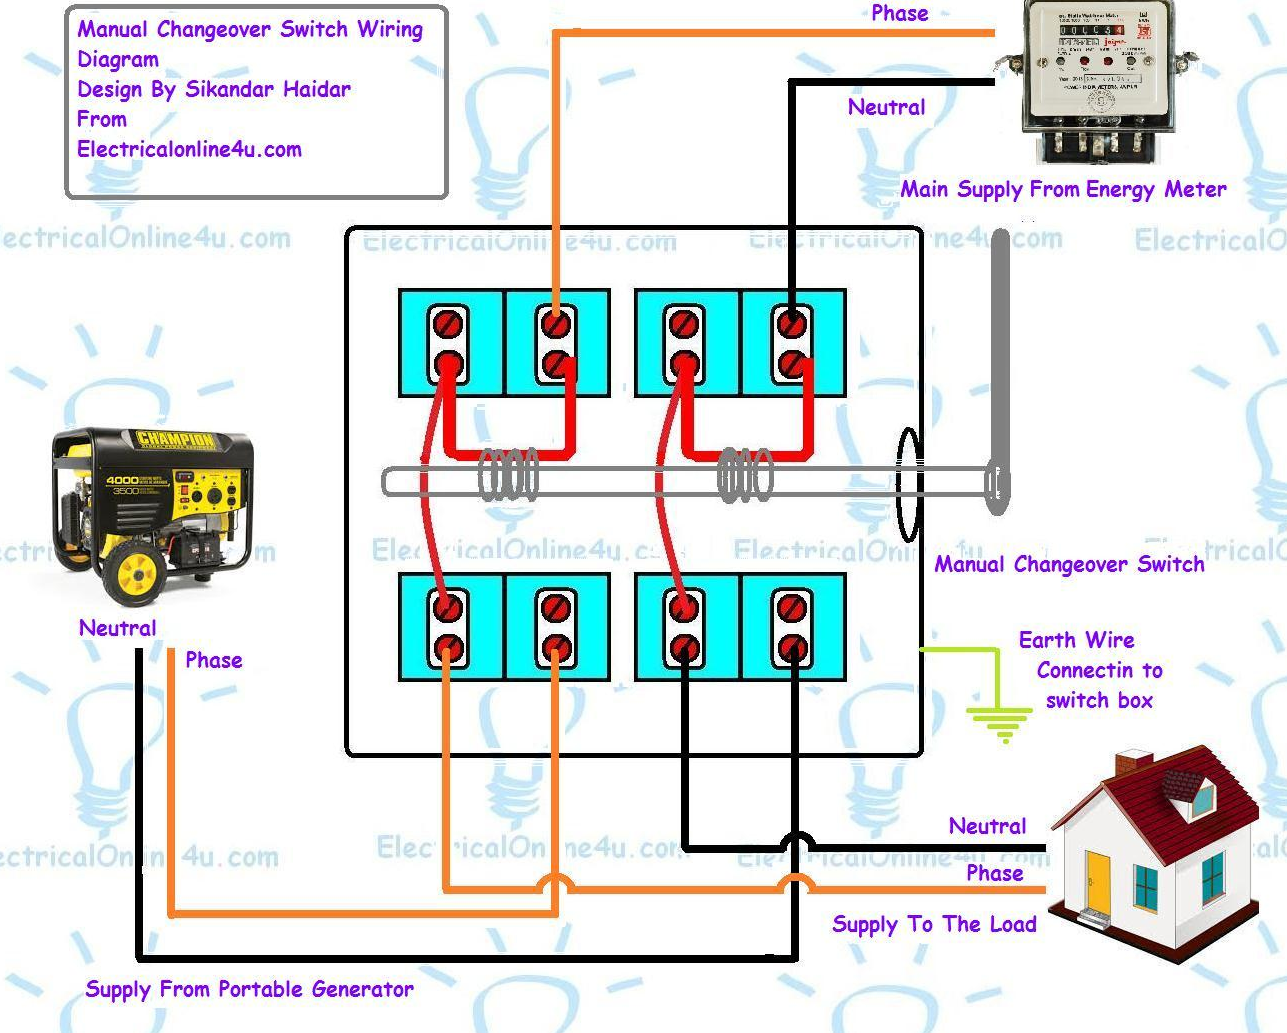 Home Wiring Diagram Maker Basic Guide Diagrams Free Electrical Drawing At Getdrawingscom For Manual Changeover Switch Portable House Software